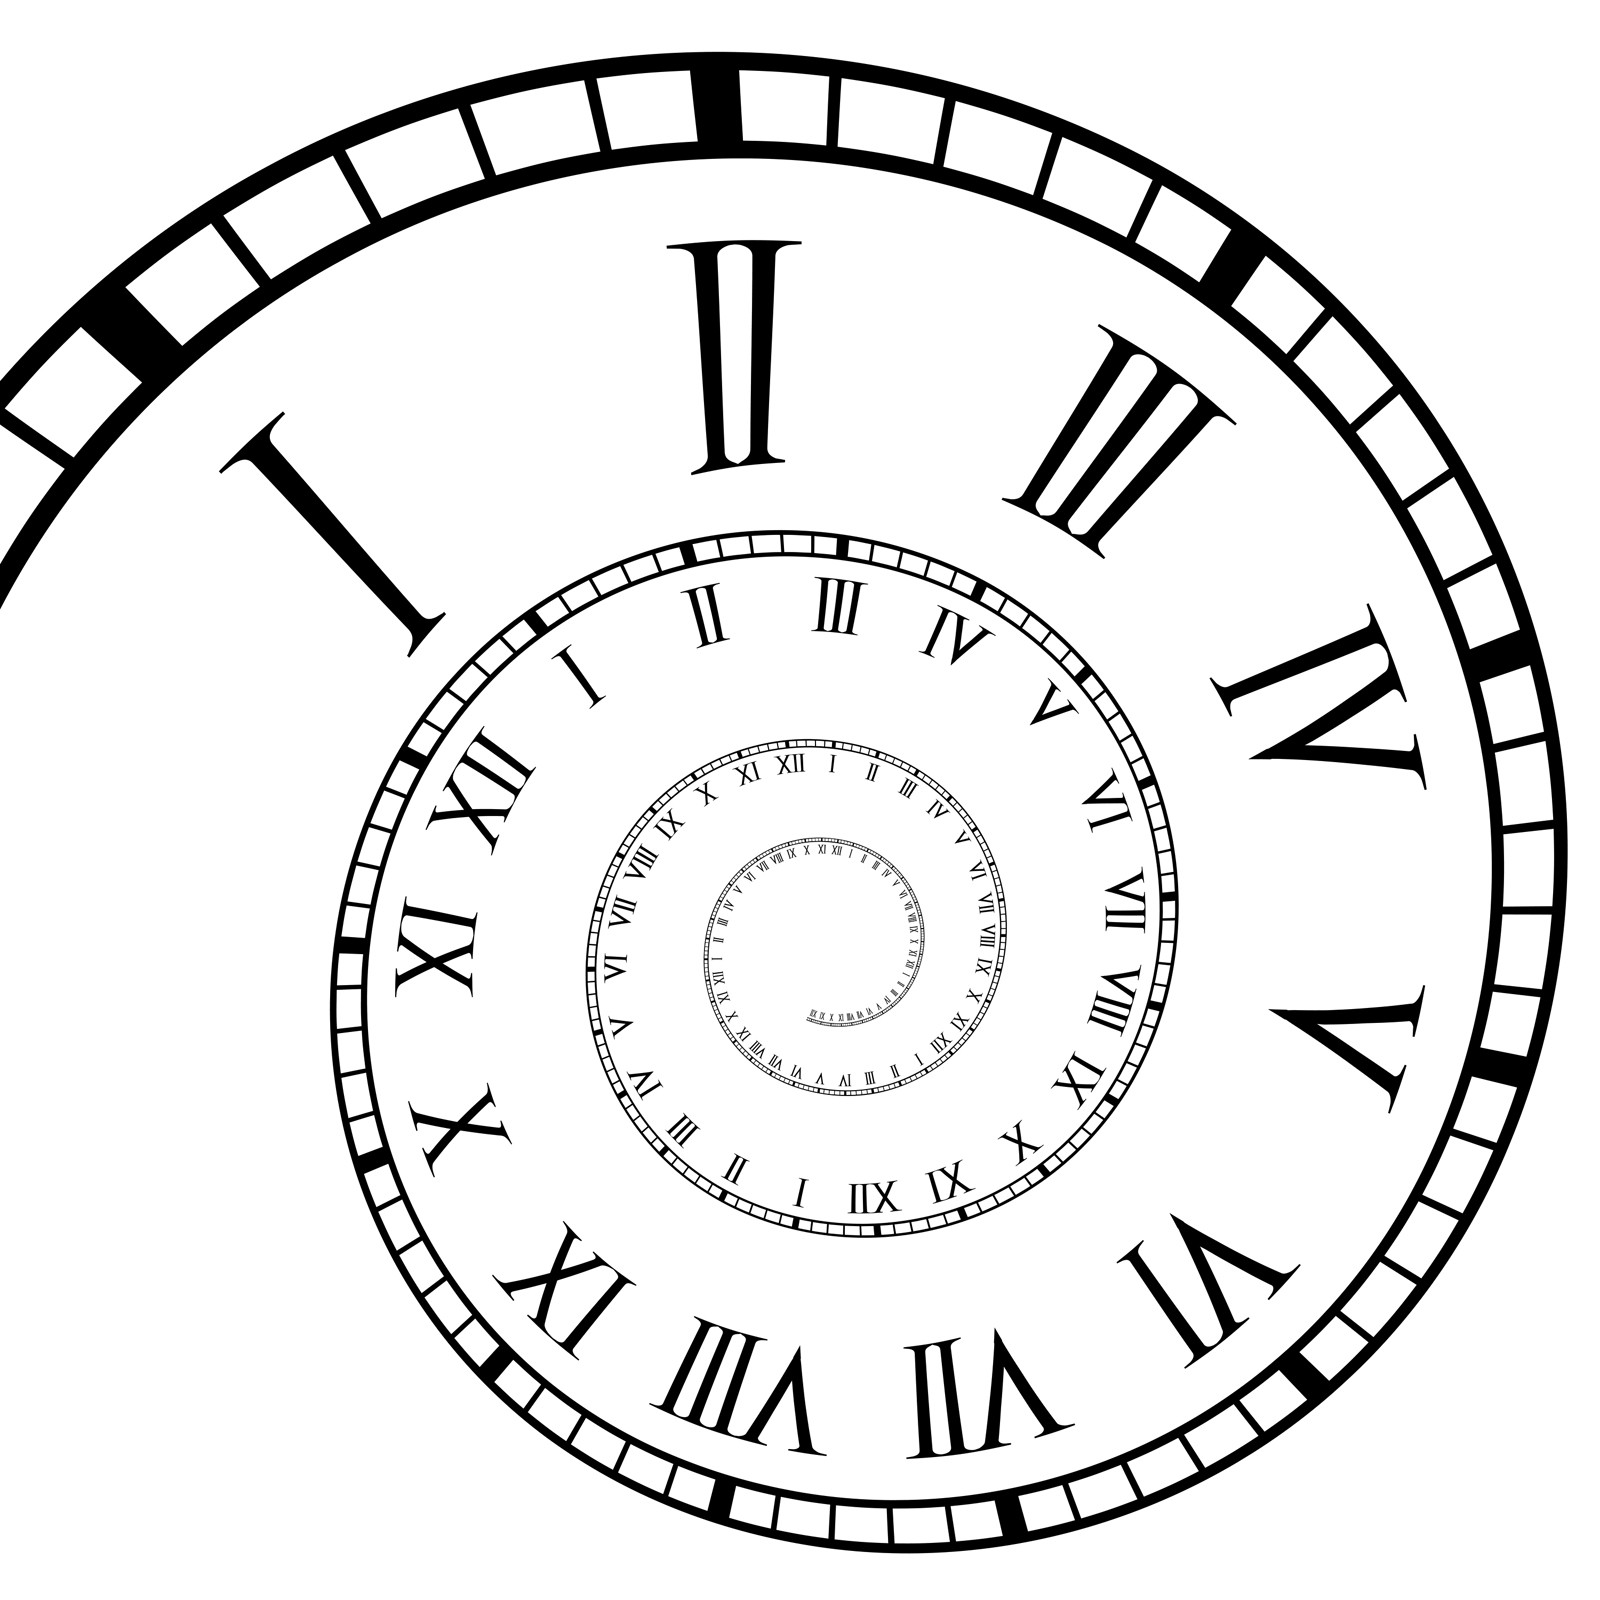 1600x1600 Not This Time Tattoo, Tattoo Clock And Piercing